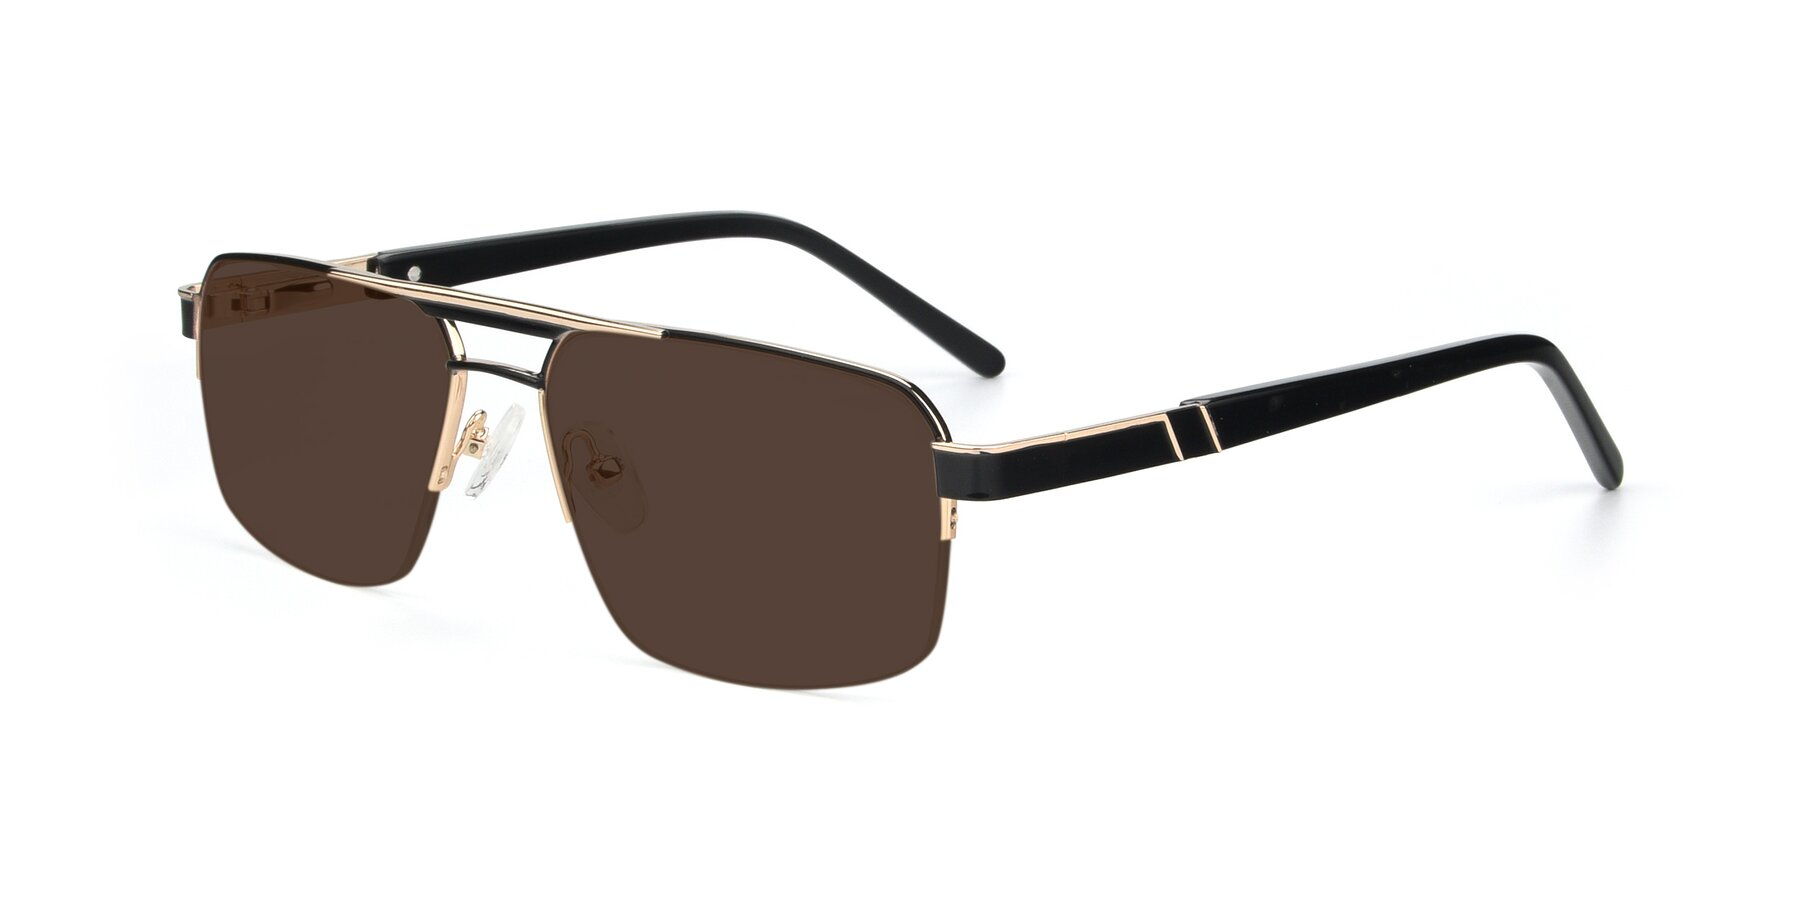 Angle of 19004 in Black-Gold with Brown Tinted Lenses